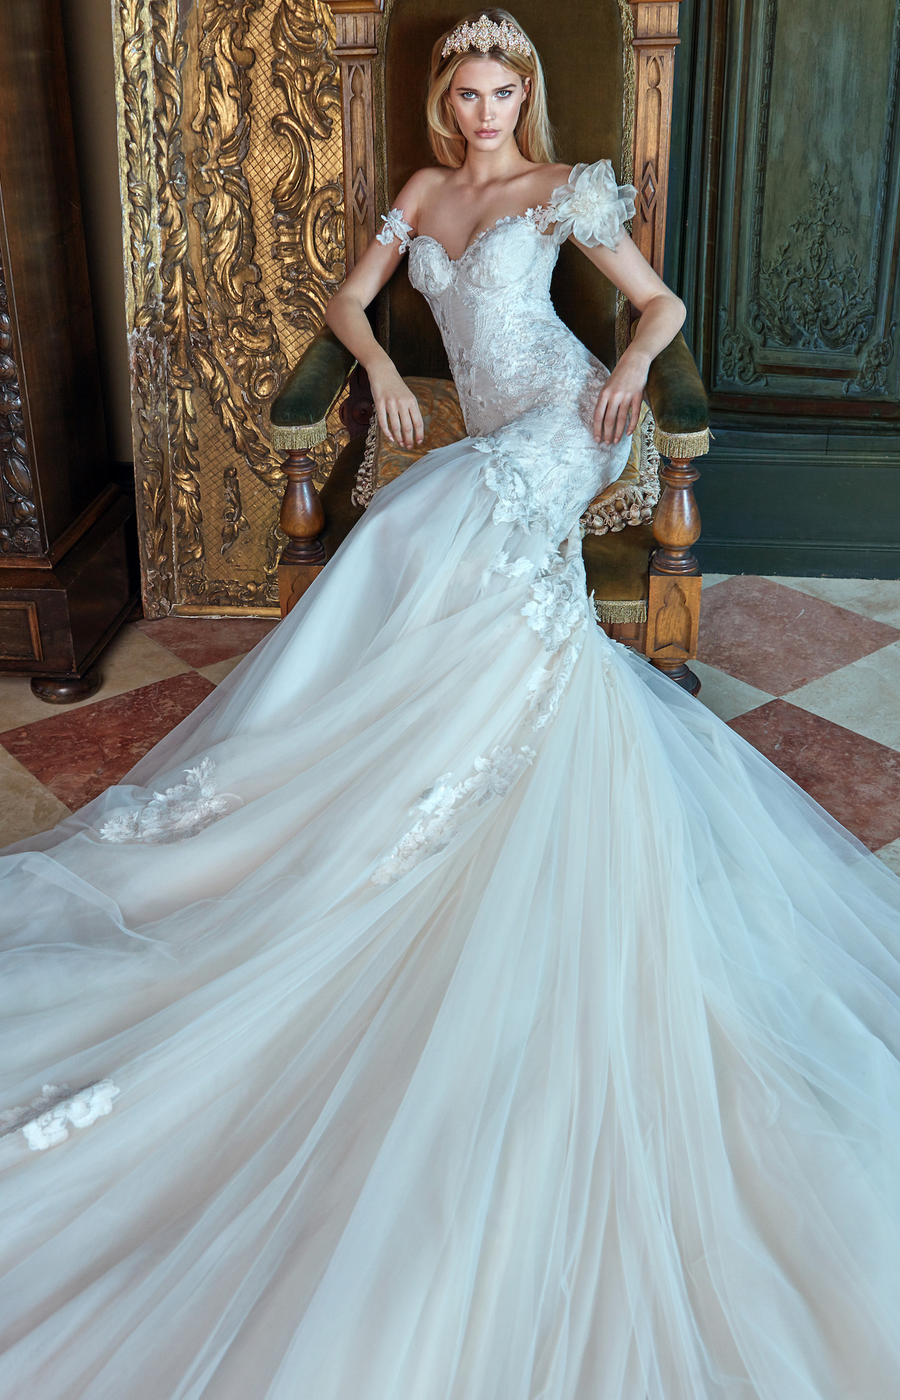 Galia Lahav Le Secret Royal Tony